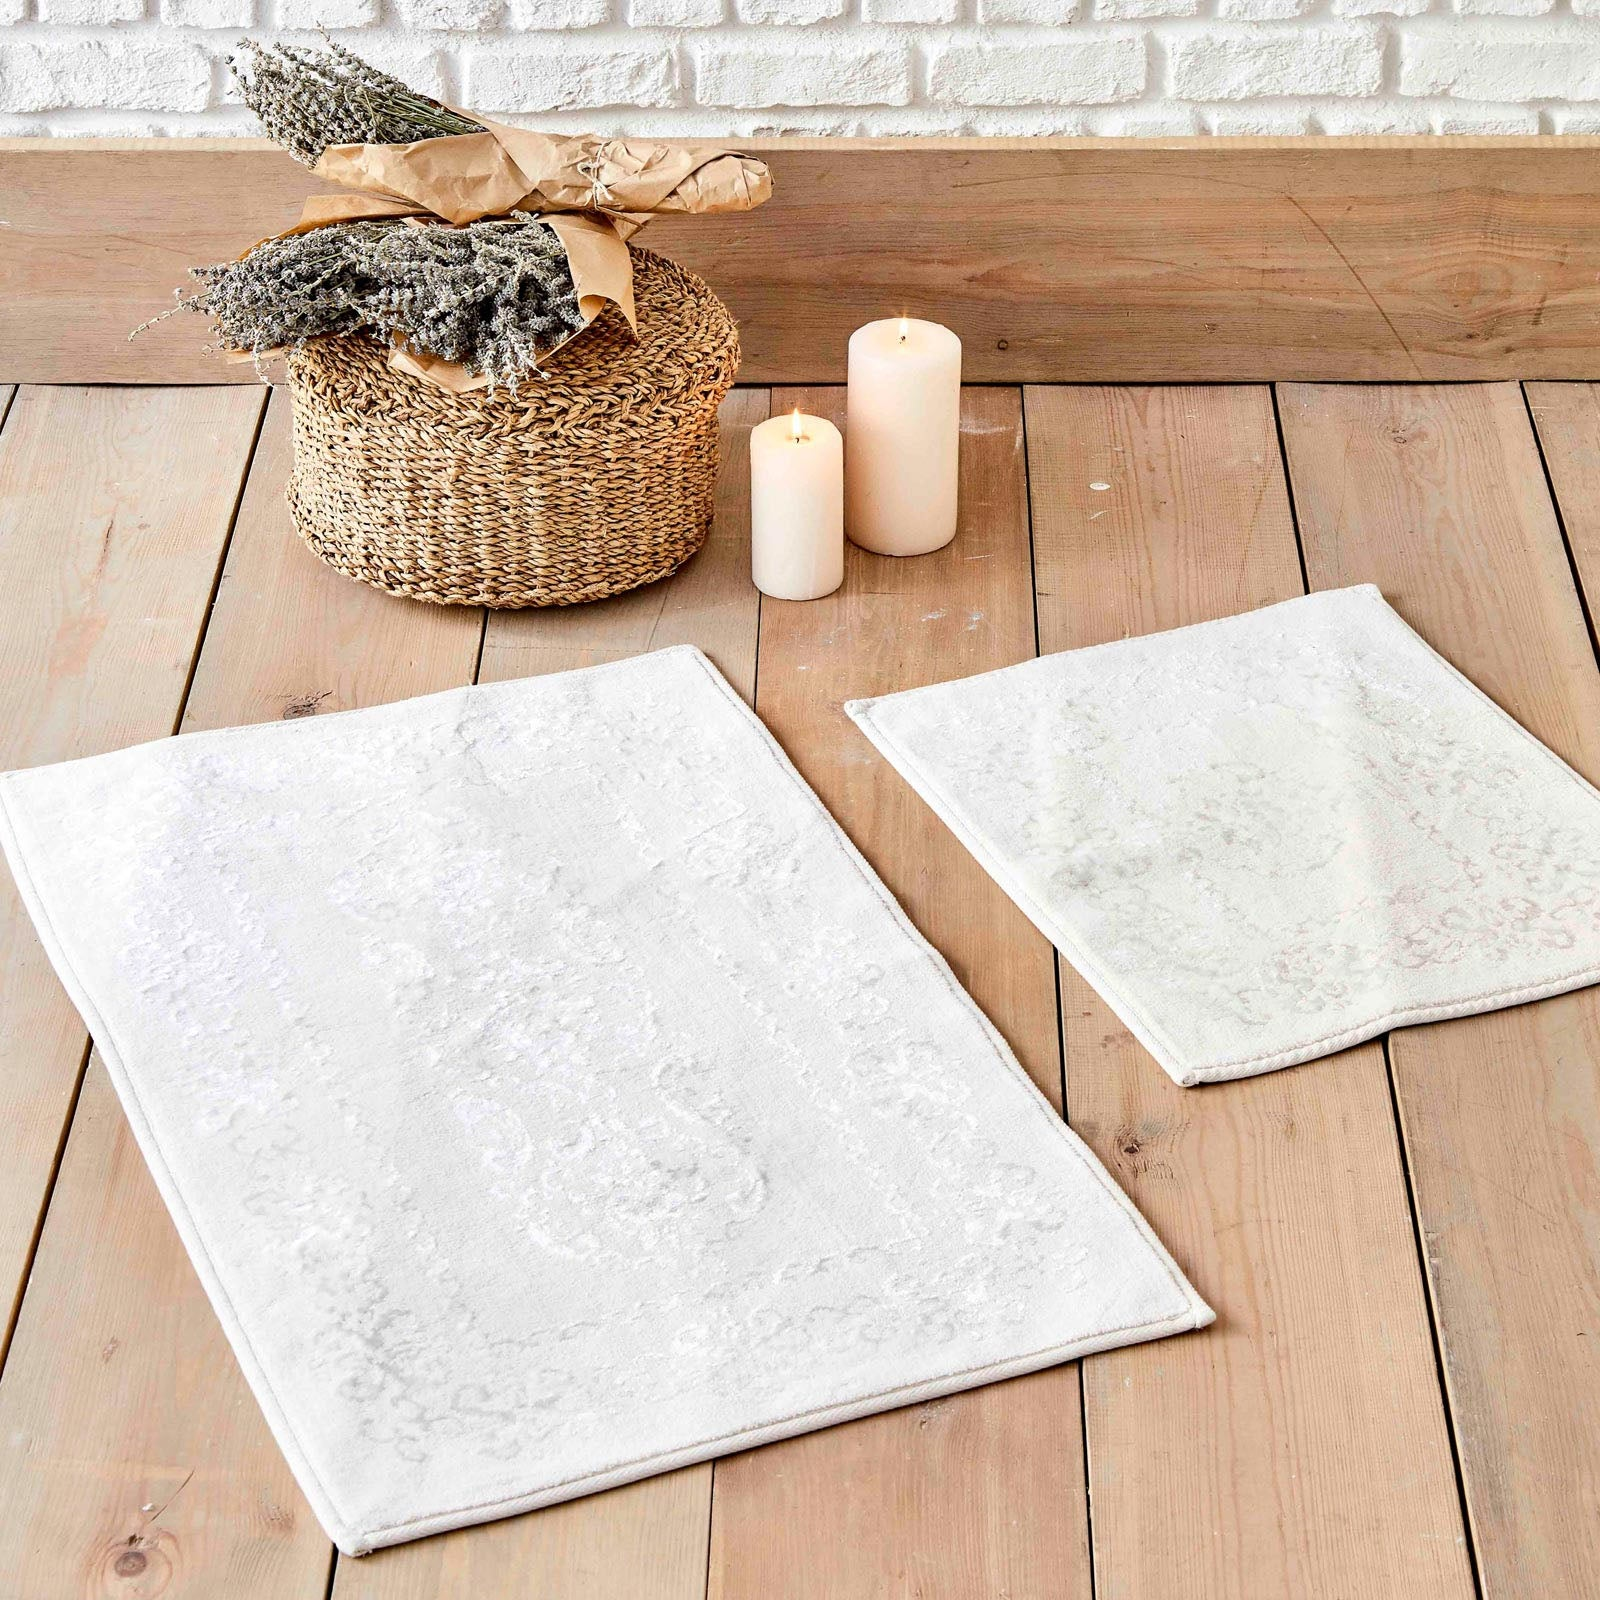 Karaca Home Azalea Cream 2 Pieces Flosh Bath Mat 200.17.01.0185 -  كاراجا هوم أزاليا كريم قطعتين بساط حمام فلوش - Shop Online Furniture and Home Decor Store in Dubai, UAE at ebarza